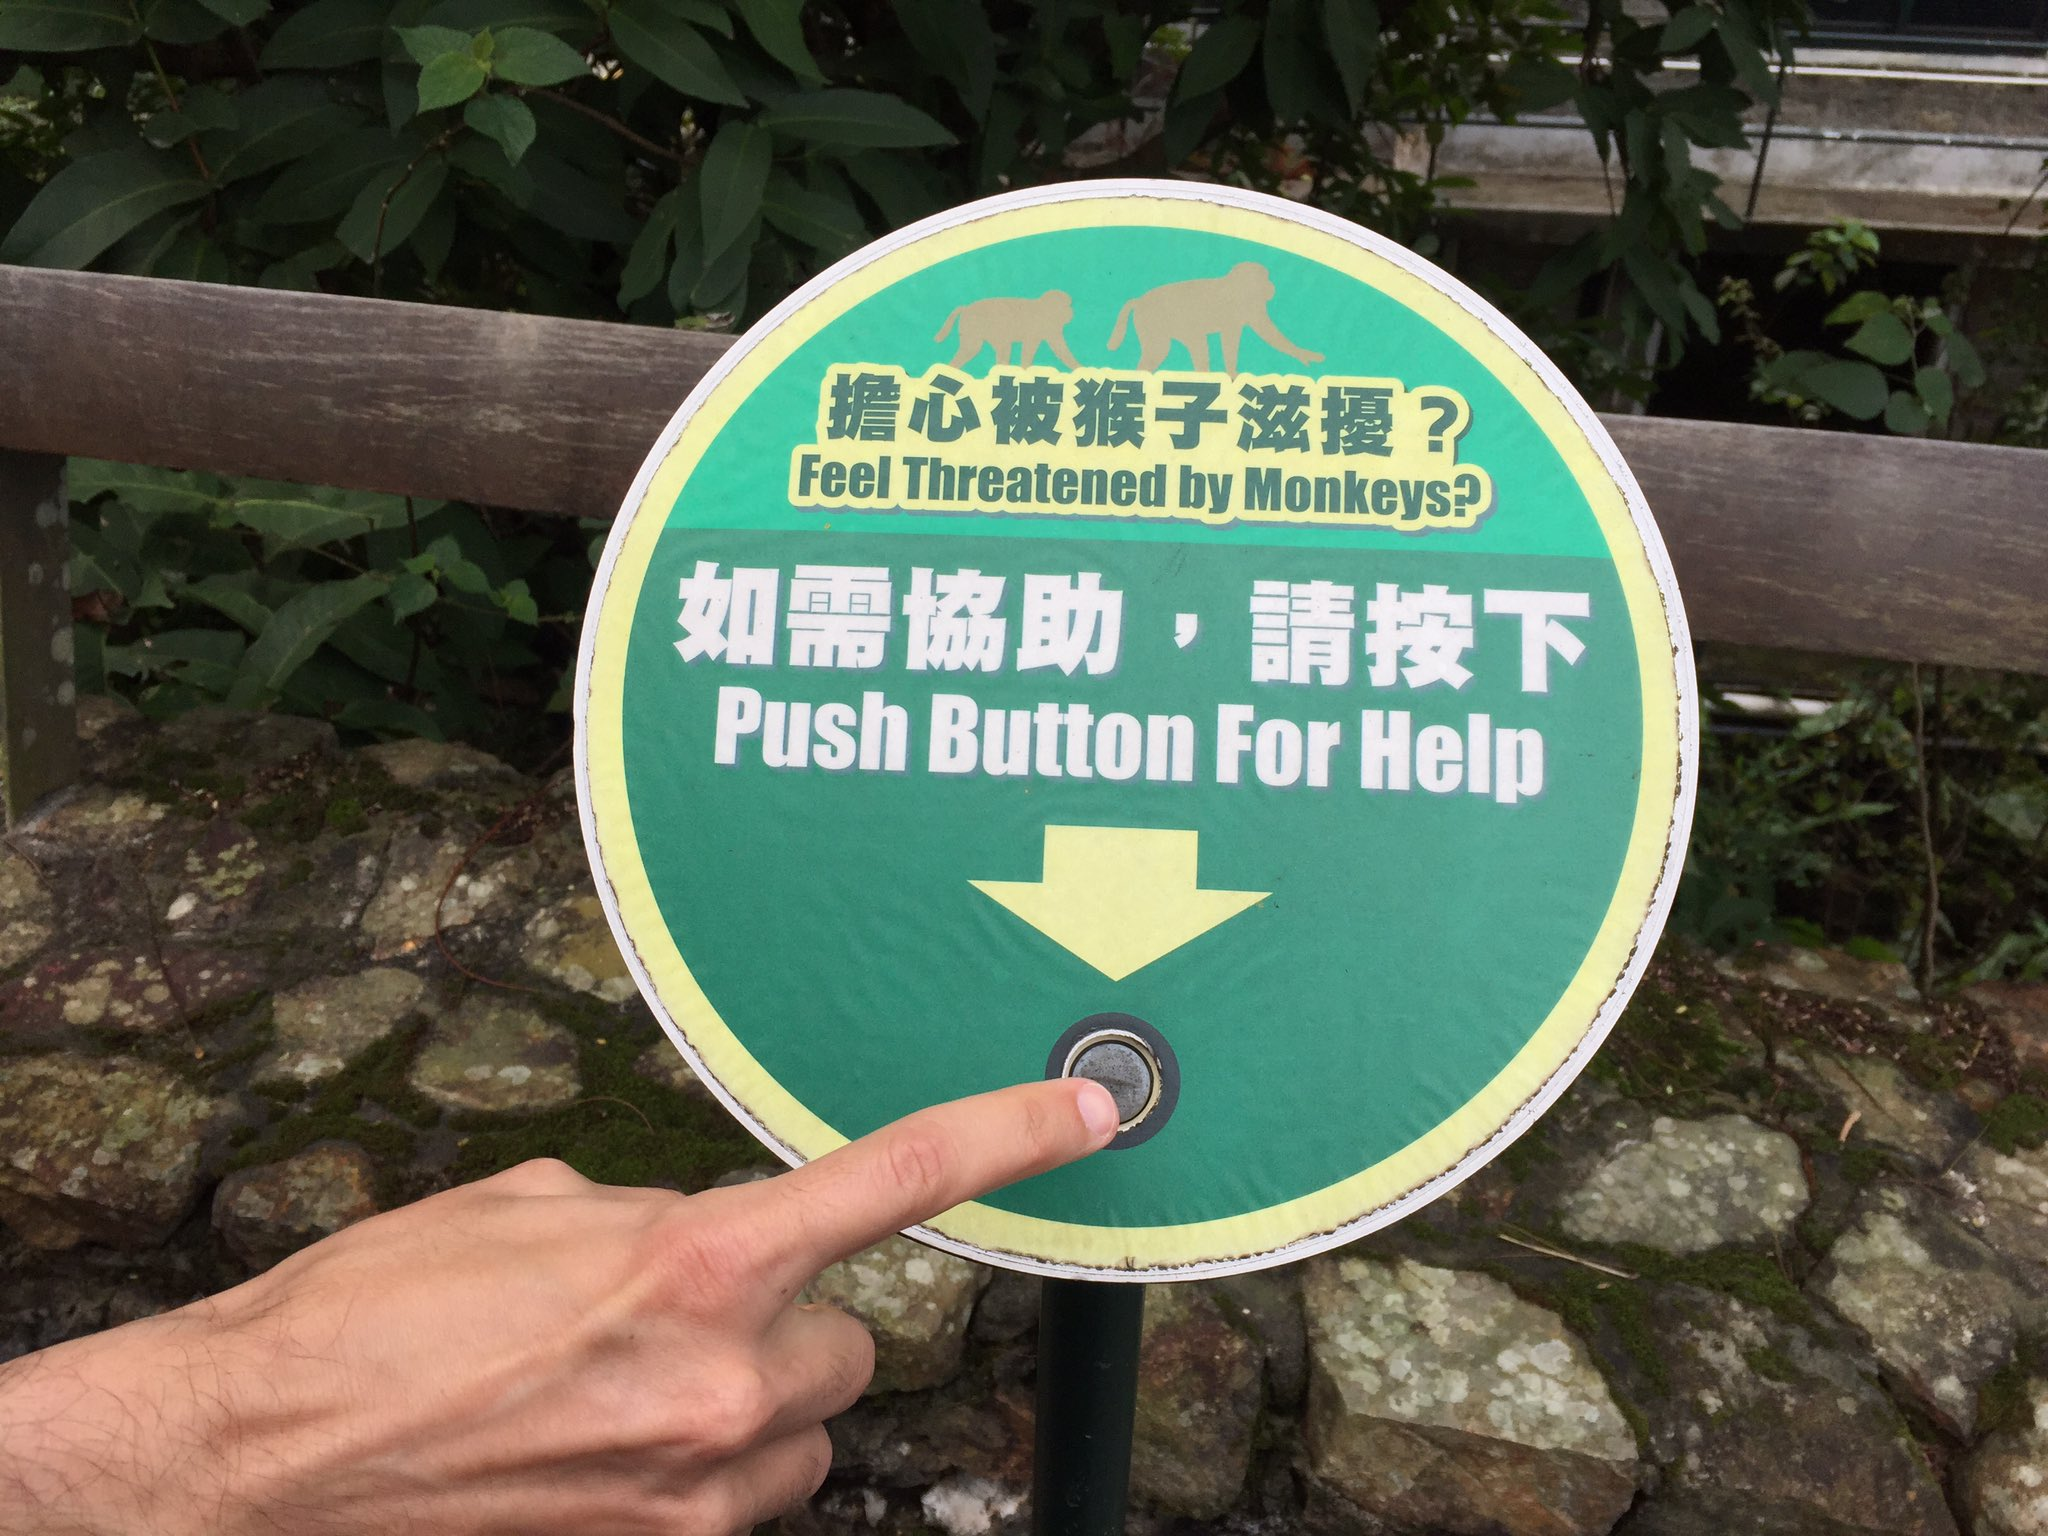 """Feel threatened by monkeys?"" at Kadoorie Farm and Botanic Garden https://t.co/Qc0B70oVeK https://t.co/aNwgApqCfj"